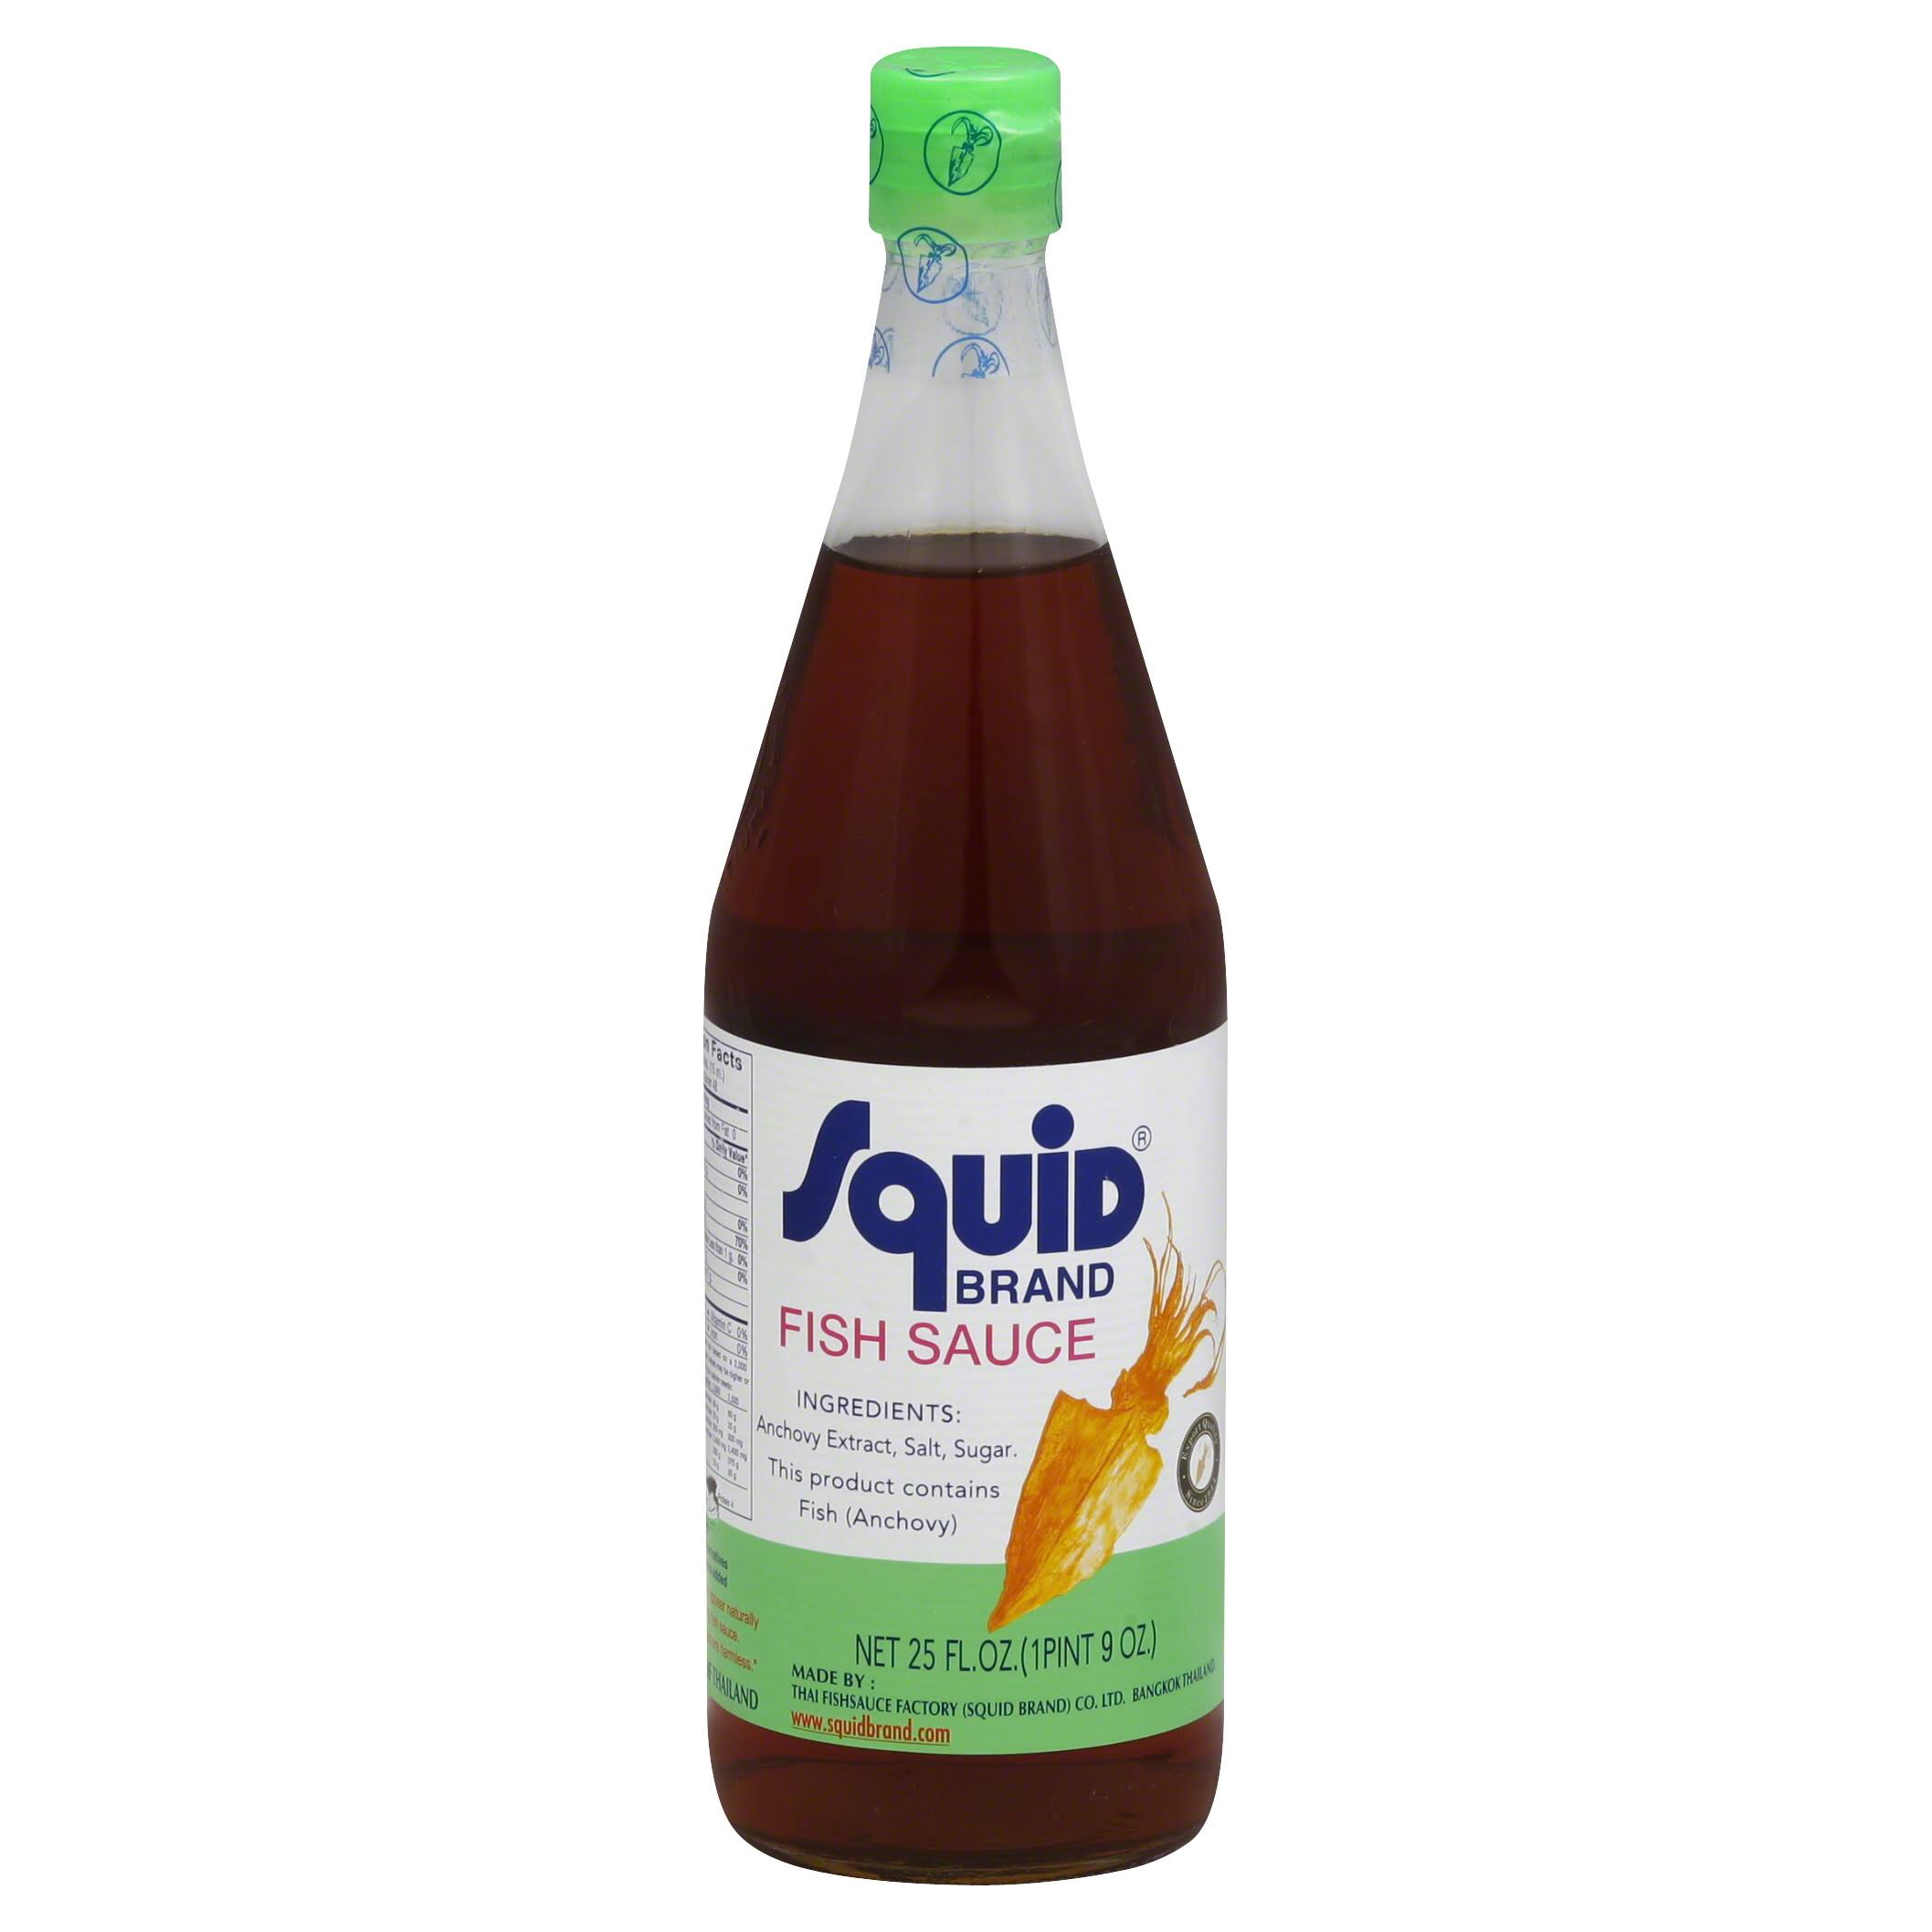 Squid Brand Fish Sauce - 24oz